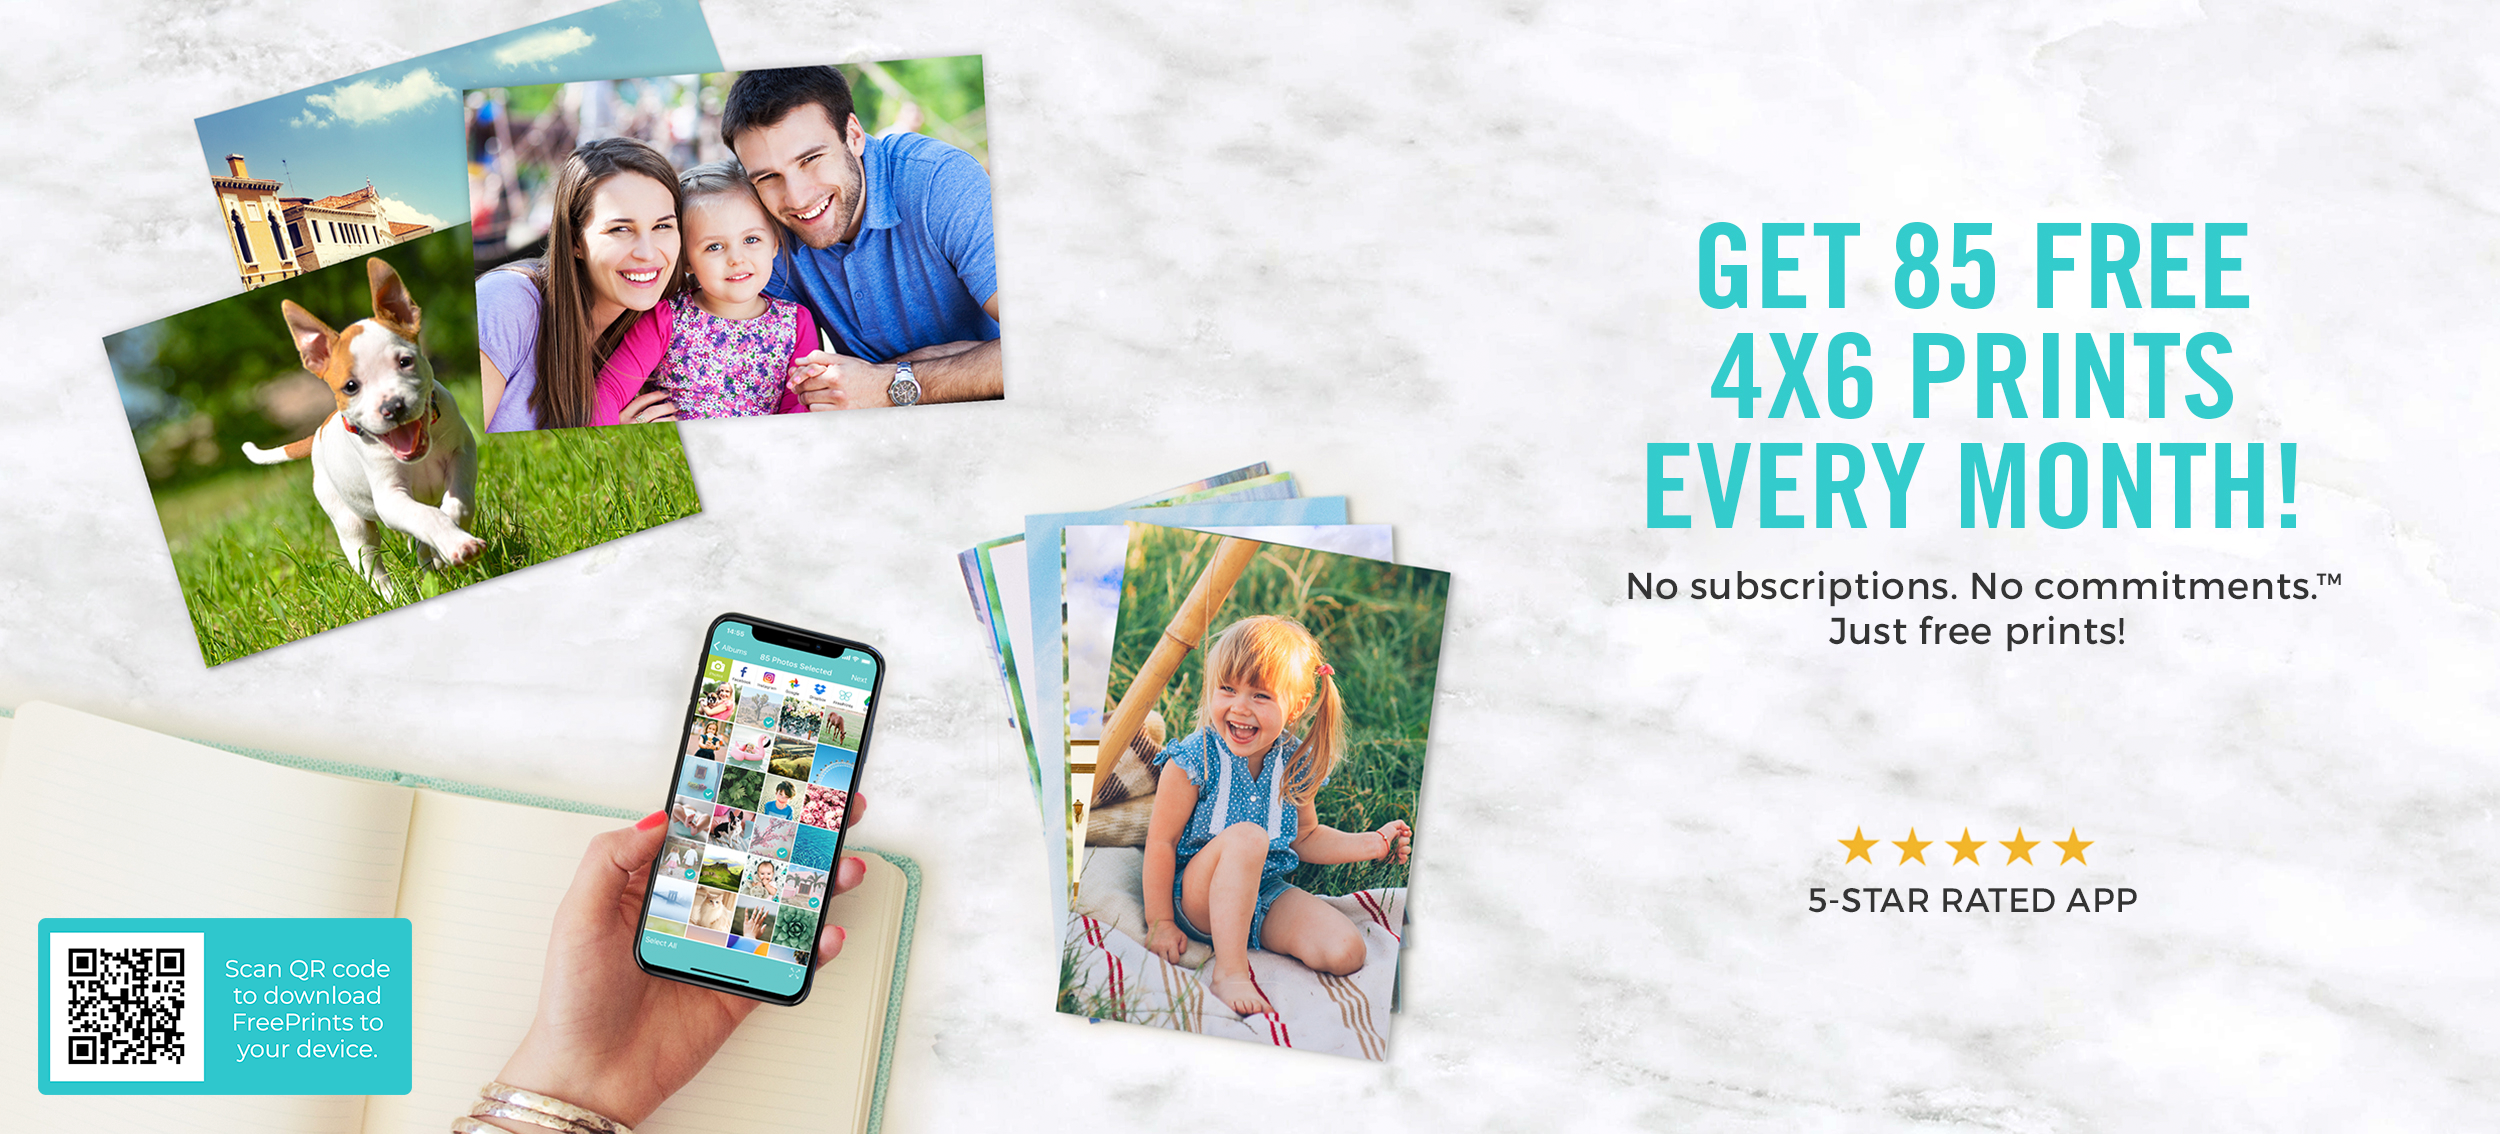 GET A FREE 8X8 PHOTO TILE